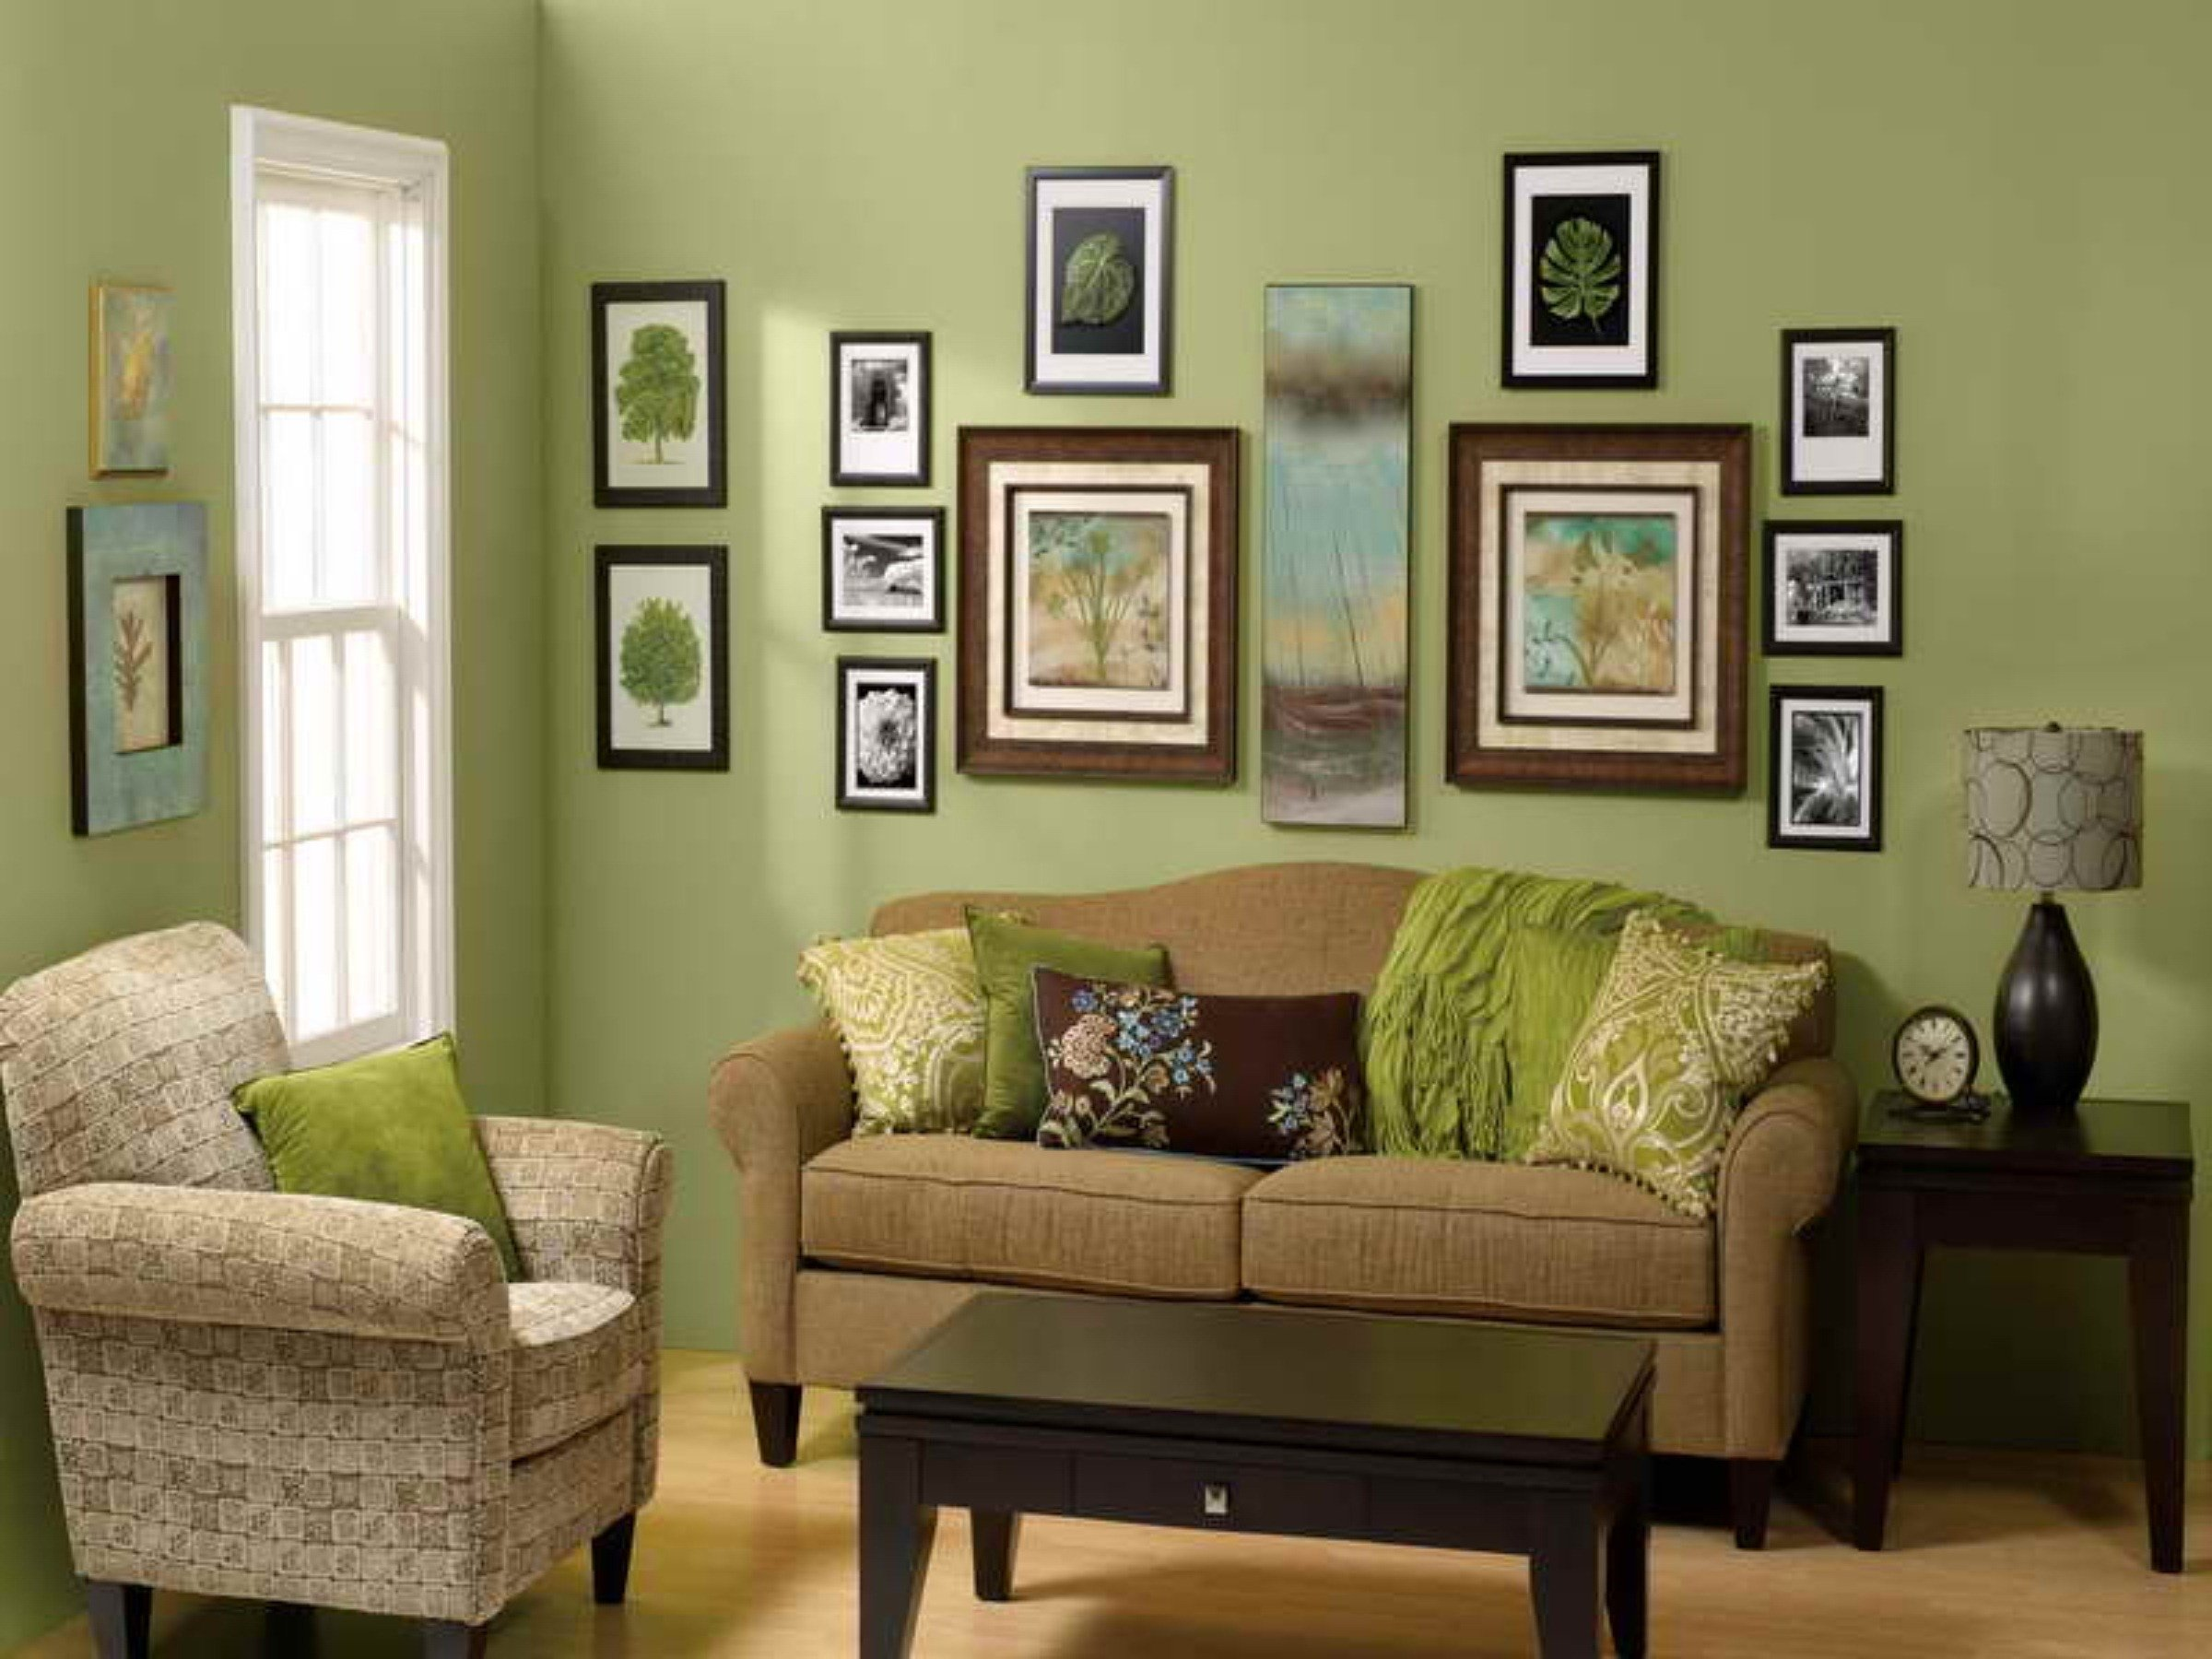 Home Decoration Green Wall Paint White Curtain Dining Table Chairs Affordable Living Room Furniture Amazing Decorating Ideas With Brown Colored Sofas